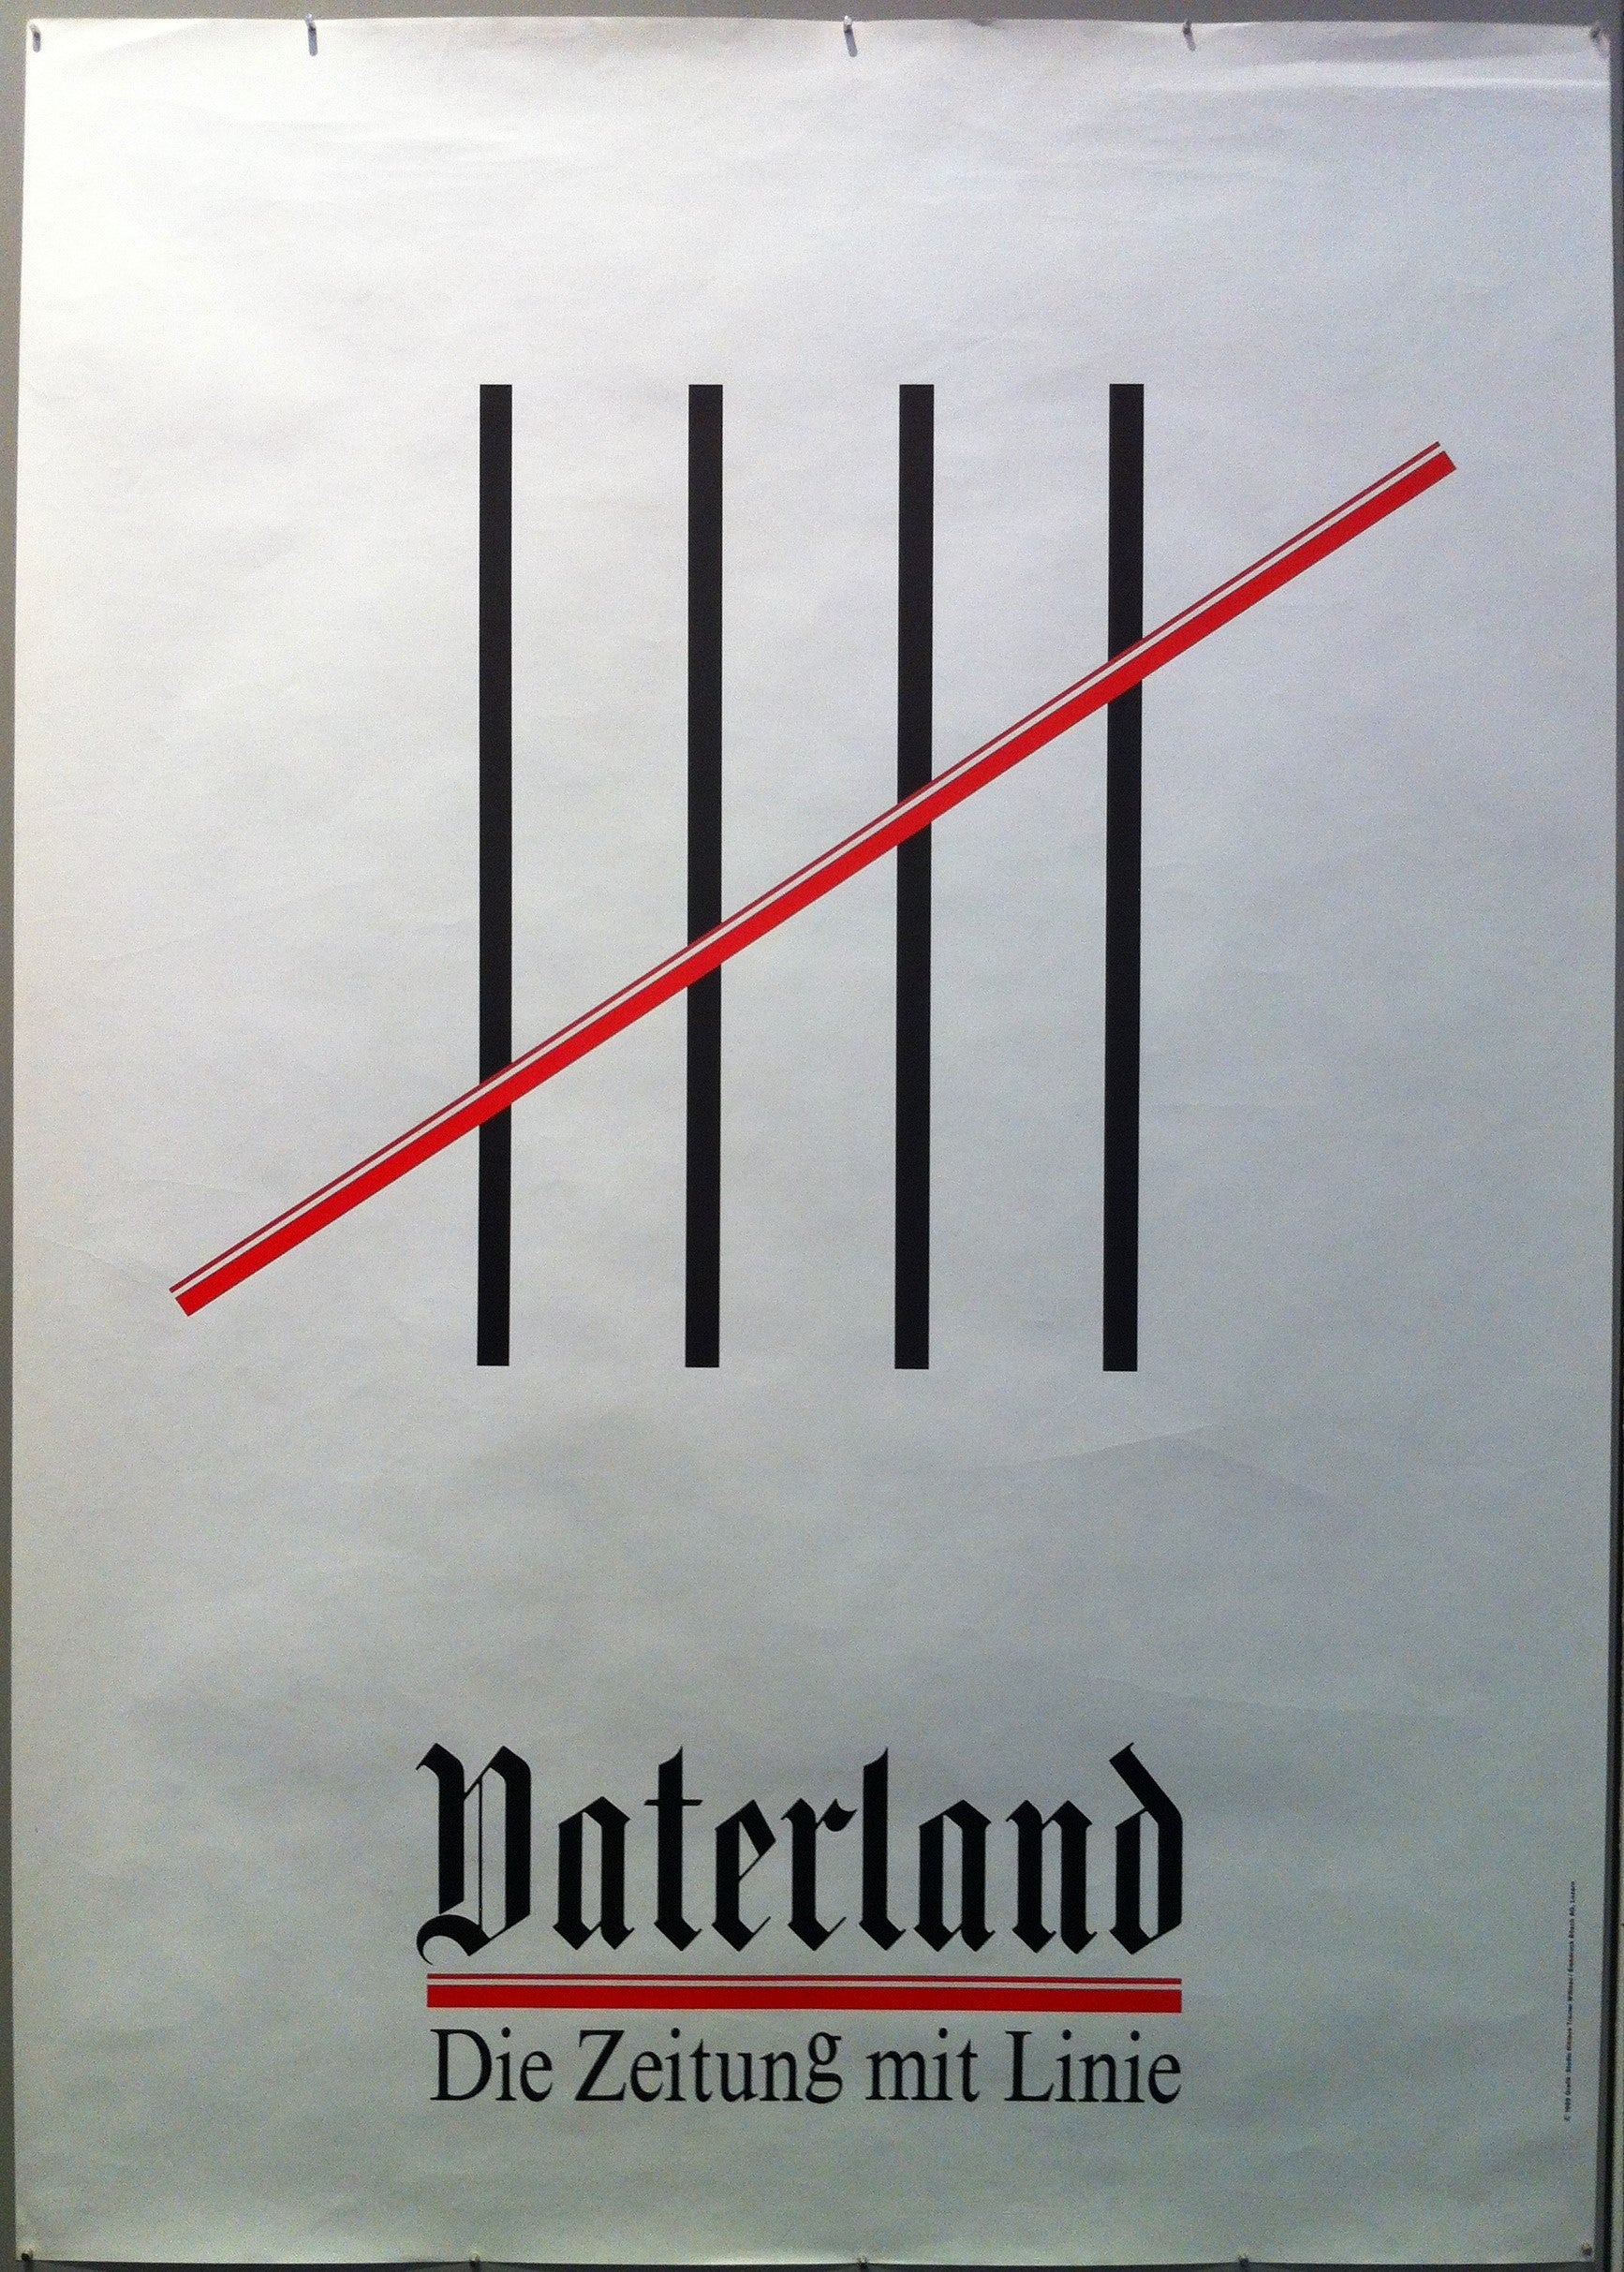 Vaterland Tally